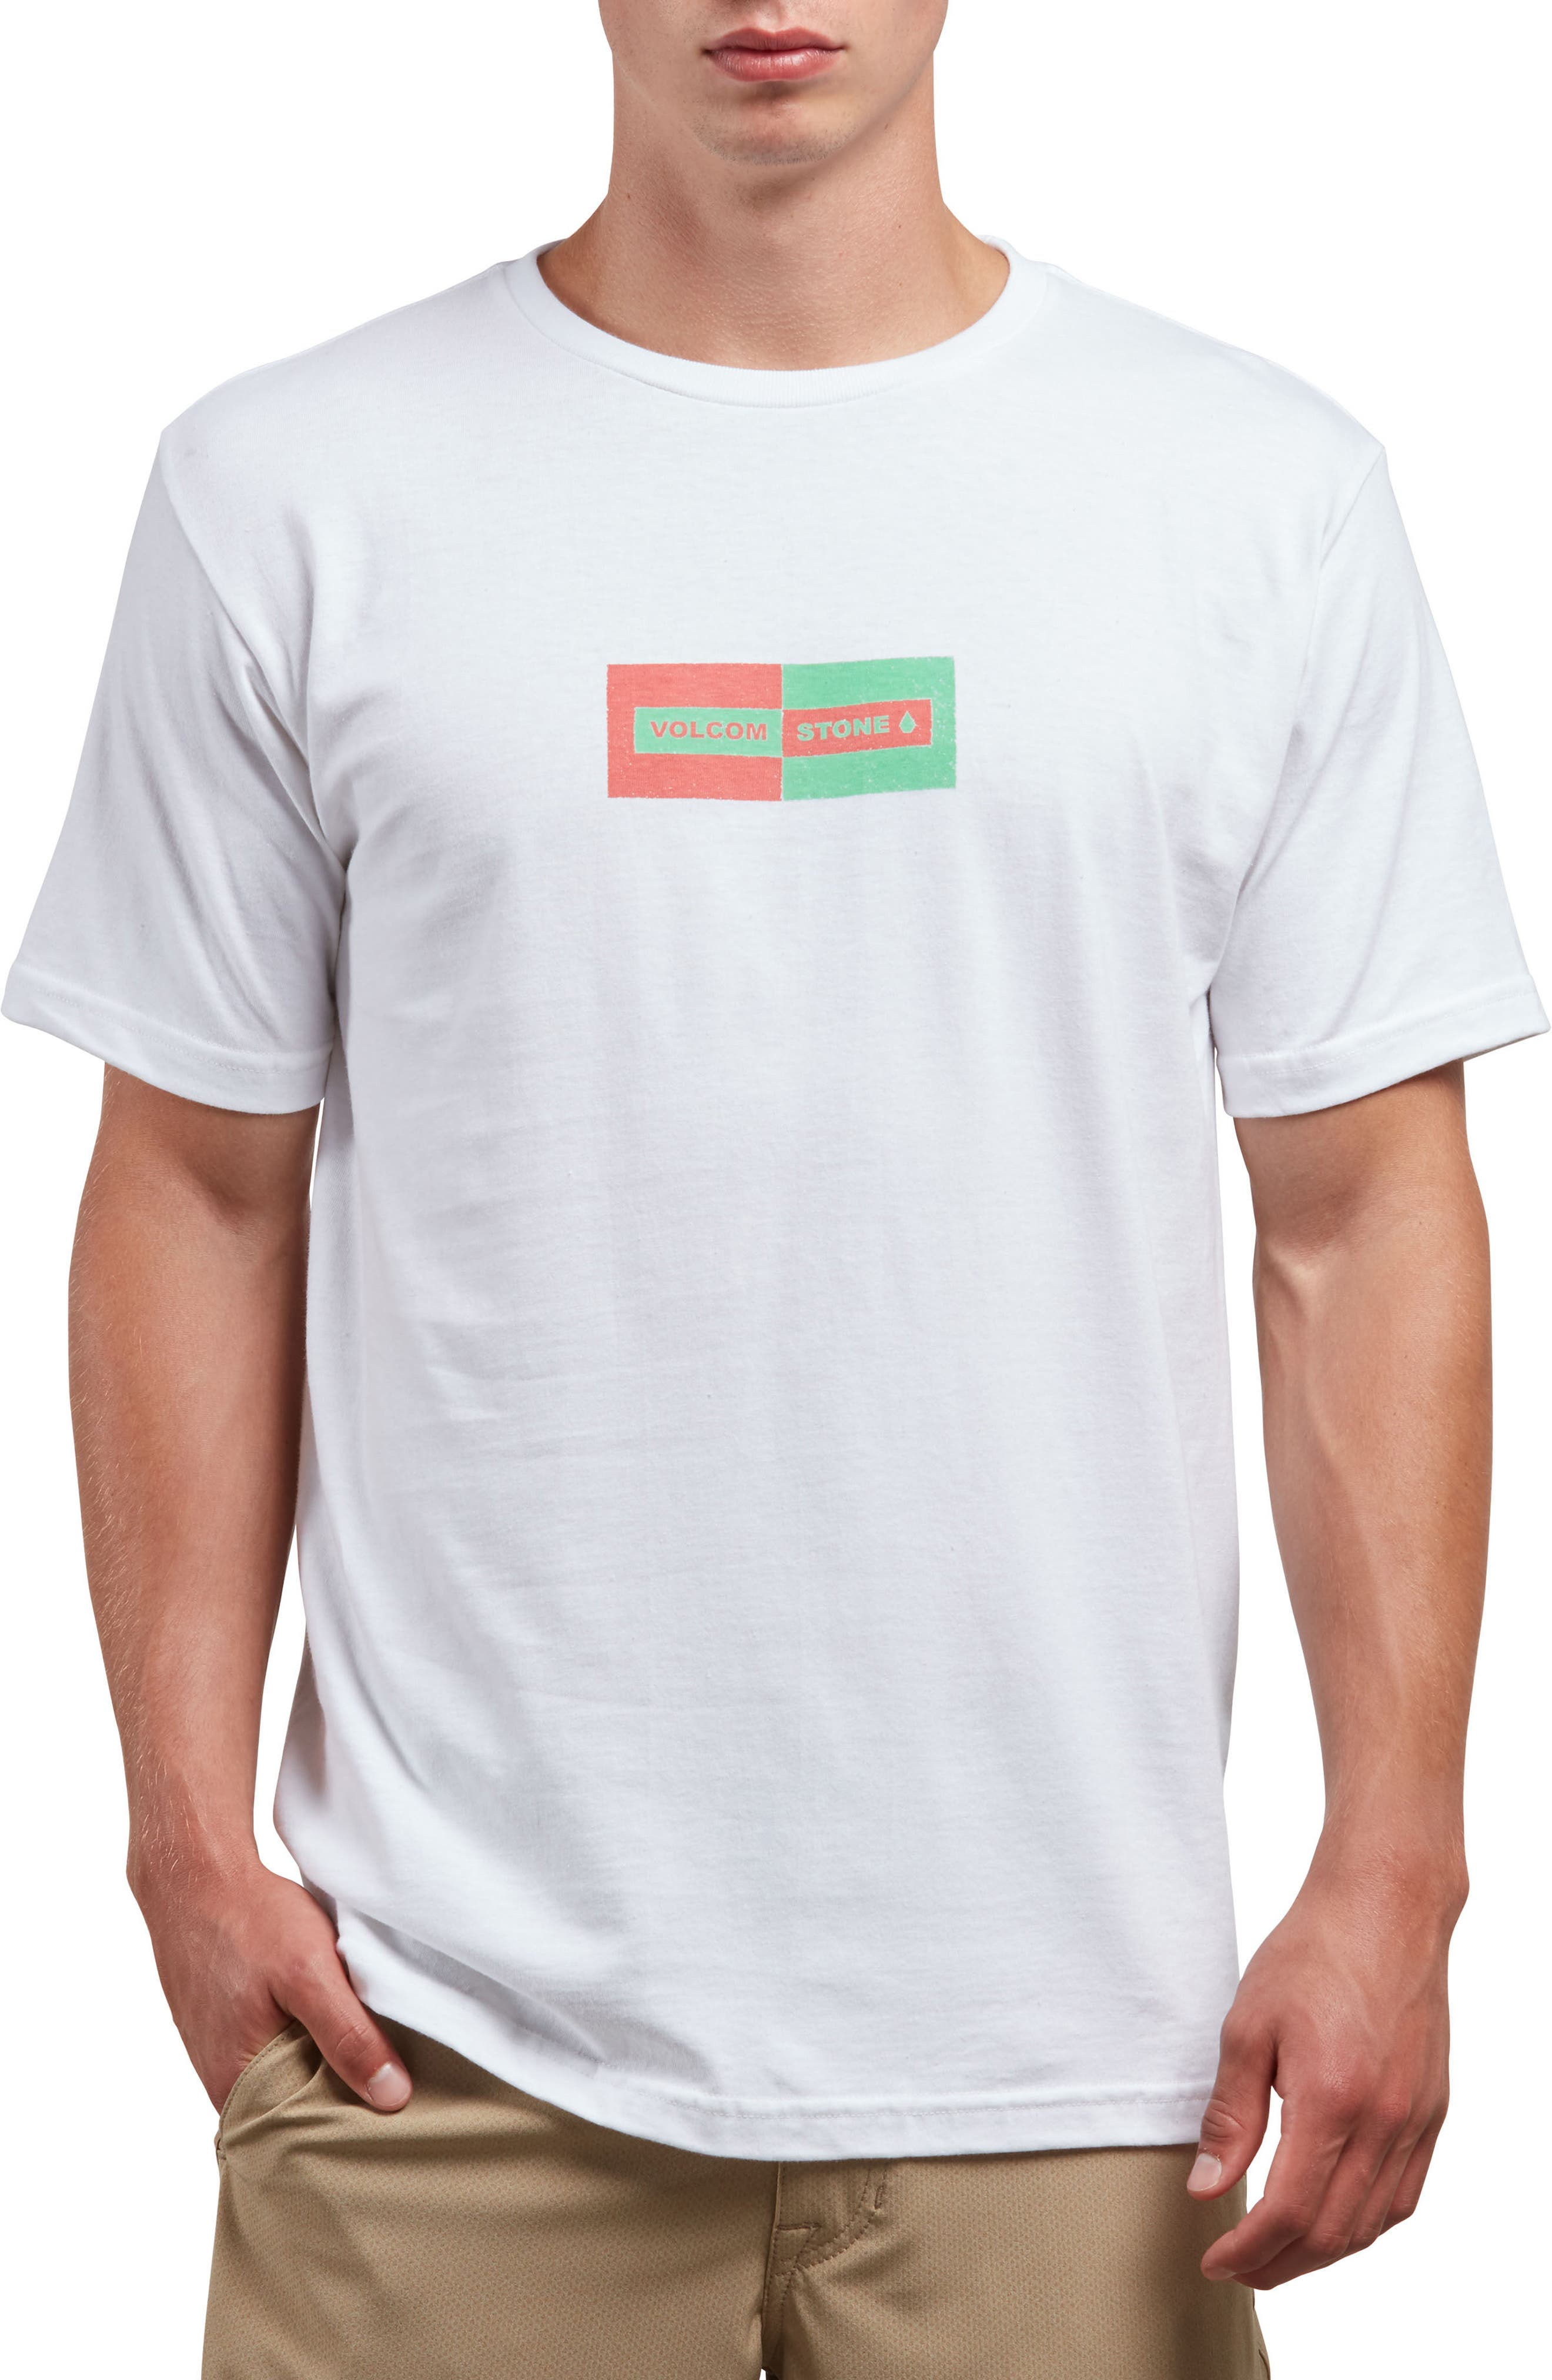 Same Difference T-Shirt,                             Main thumbnail 1, color,                             White